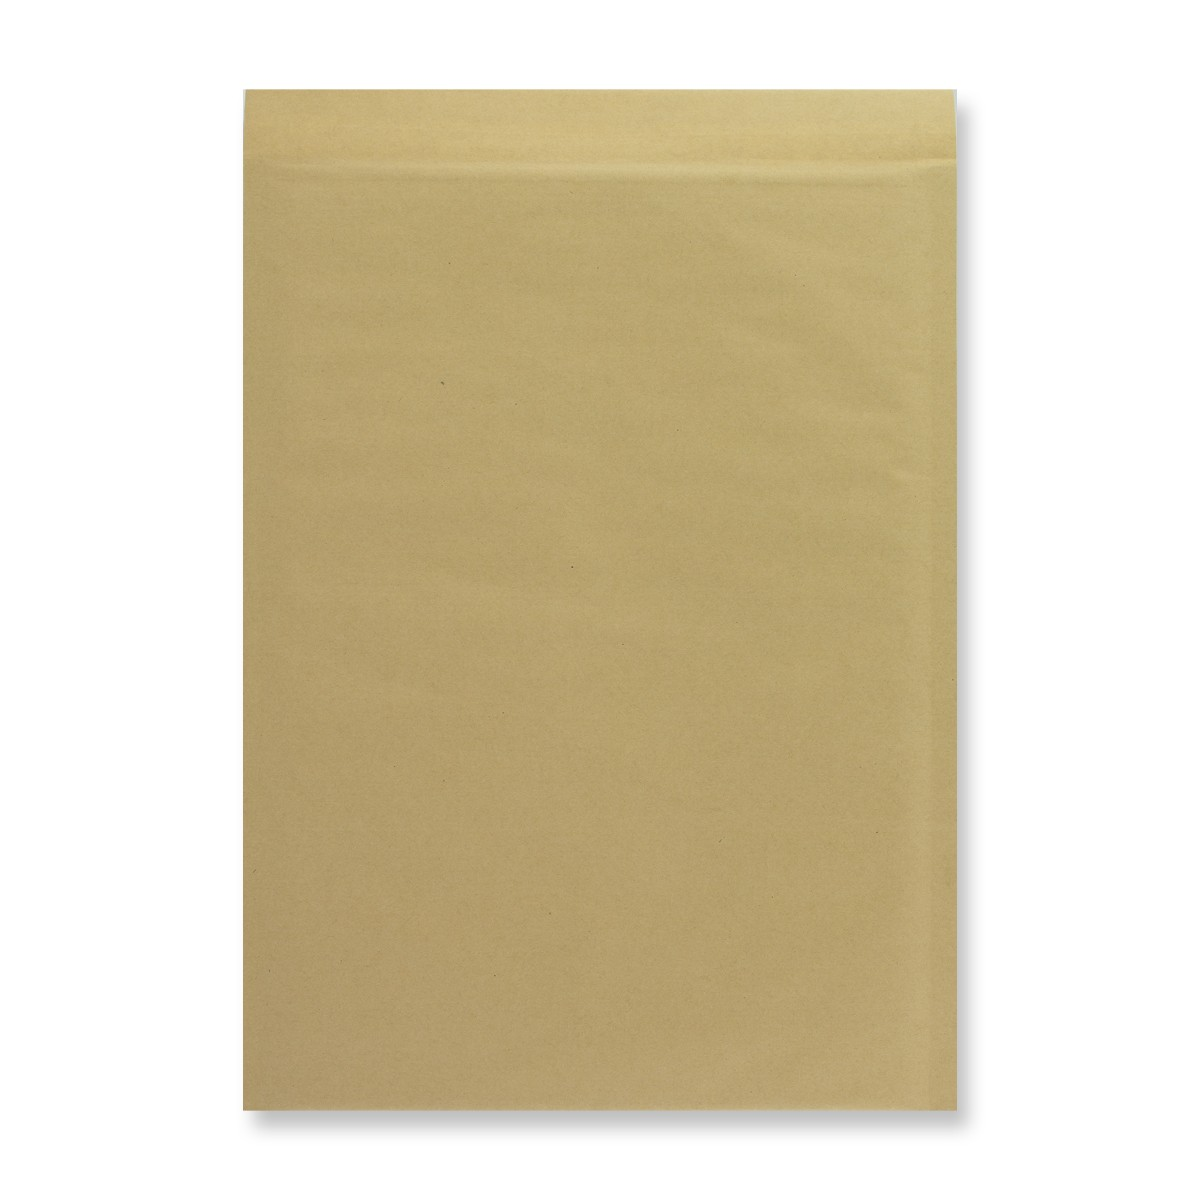 470 x 350mm MANILLA BUBBLE BAG ENVELOPES